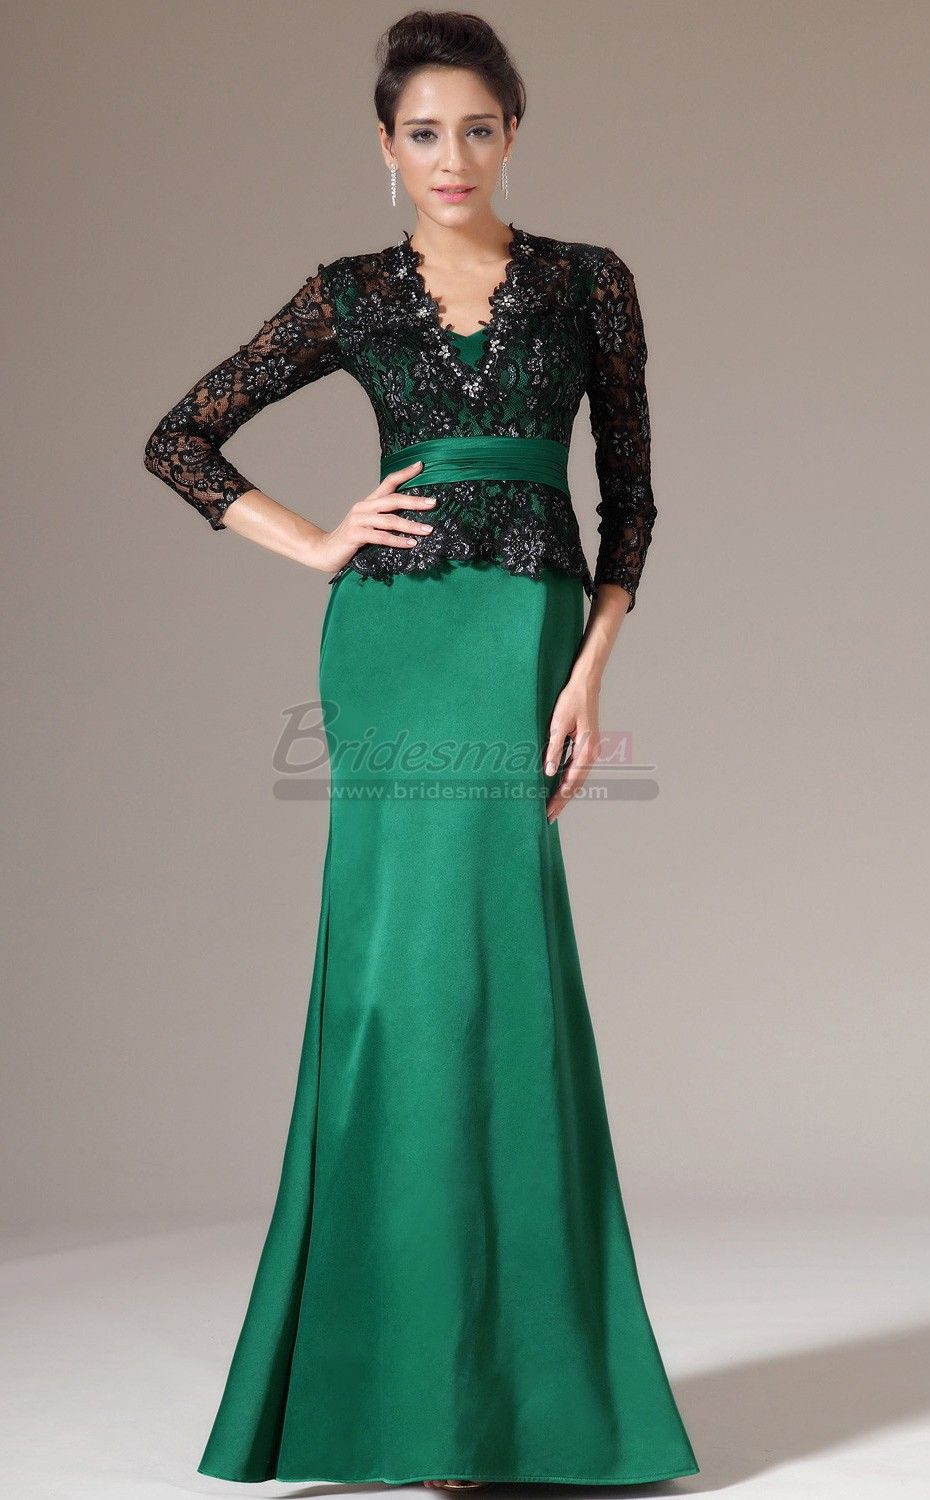 V neck long matte satin lace green mermaid bridesmaid dress with v neck long matte satin lace green mermaid bridesmaid dress with long sleeve jt ombrellifo Image collections